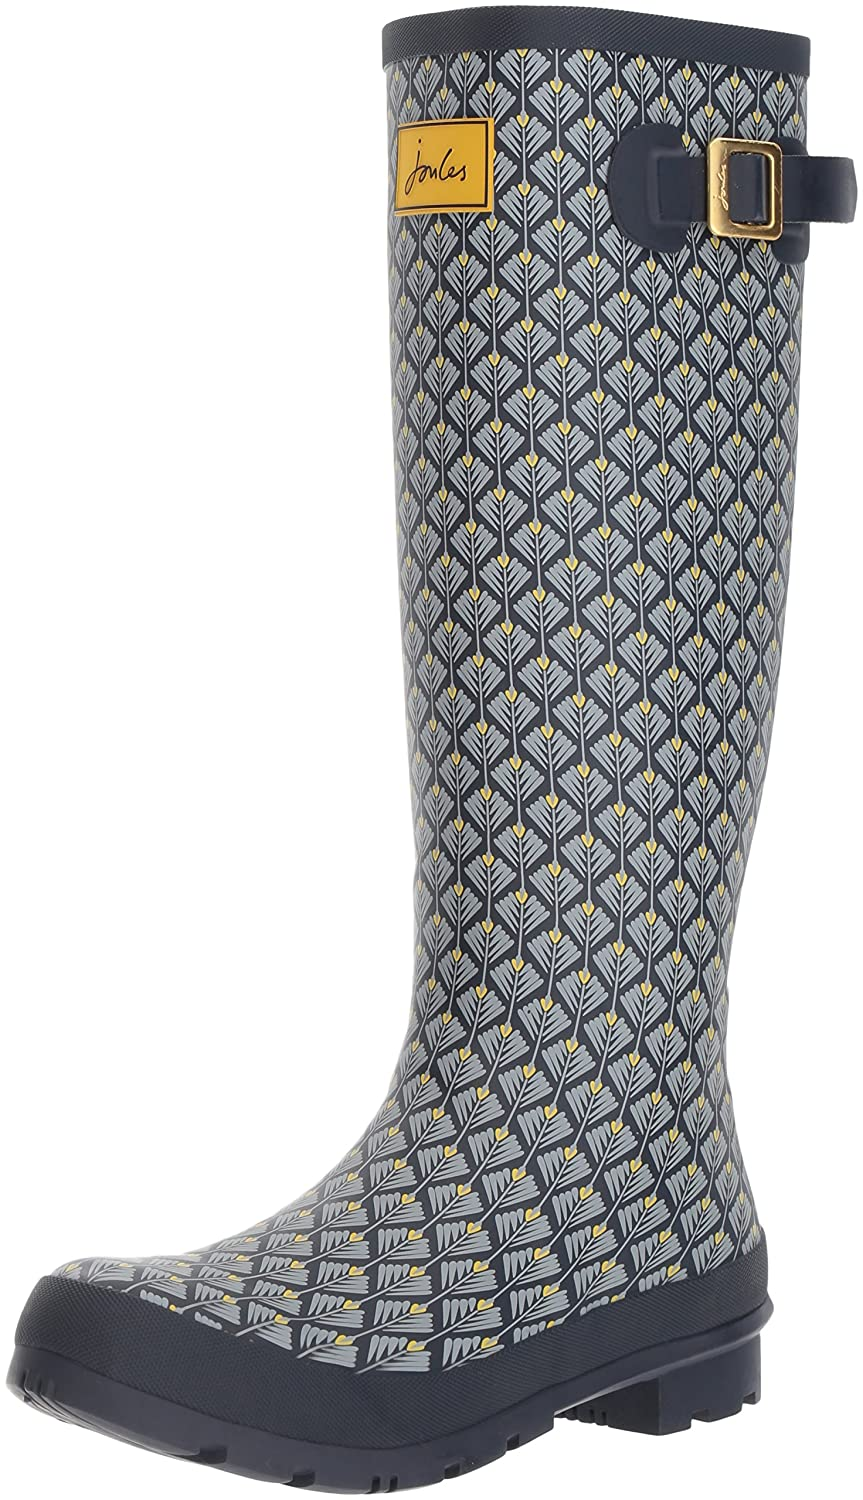 Joules Women's Welly Print Rain Boot B06WGNW6PX 7 B(M) US|French Navy Feather Geo